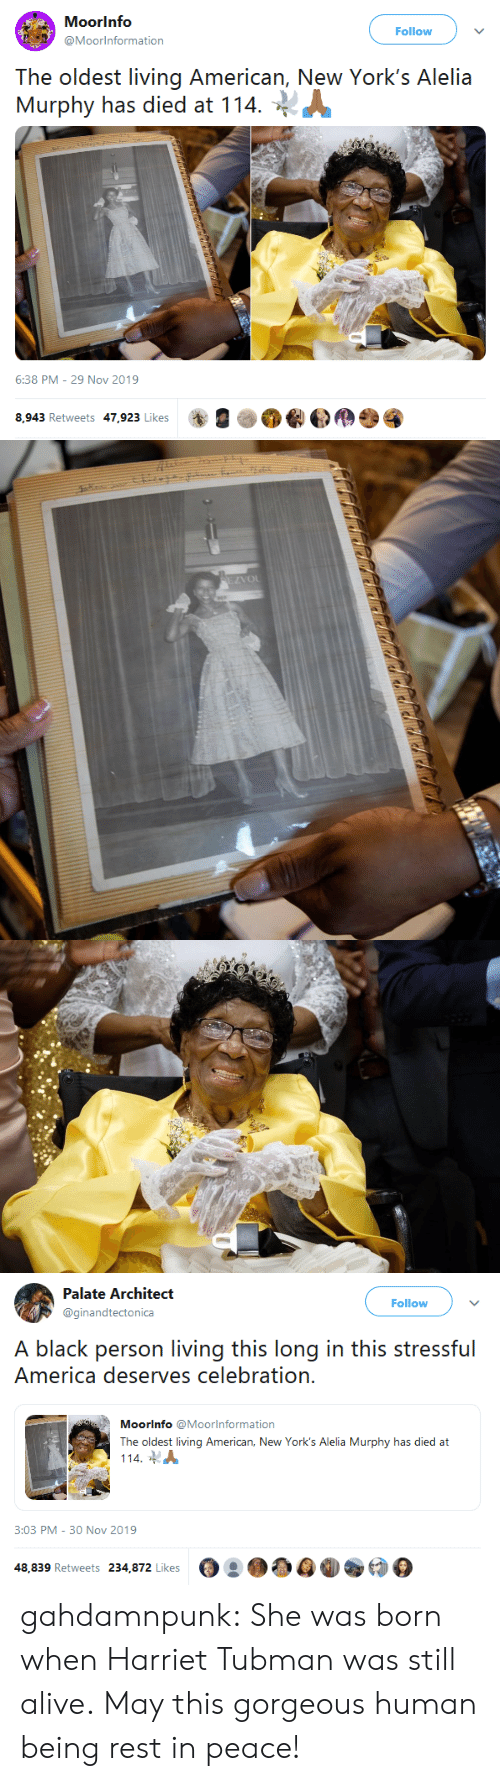 Was Born: Moorinfo  Follow  @Moorinformation  The oldest living American, New York's Alelia  Murphy has died at 114  6:38 PM - 29 Nov 2019  8,943 Retweets 47,923 Likes   EZVOL   Palate Architect  Follow  @ginandtectonica  A black person living this long in this stressful  America deserves celebration.  Moorinfo @Moorlnformation  The oldest living American, New York's Alelia Murphy has died at  114  3:03 PM - 30 Nov 2019  48,839 Retweets 234,872 Likes gahdamnpunk: She was born when Harriet Tubman was still alive. May this gorgeous human being rest in peace!